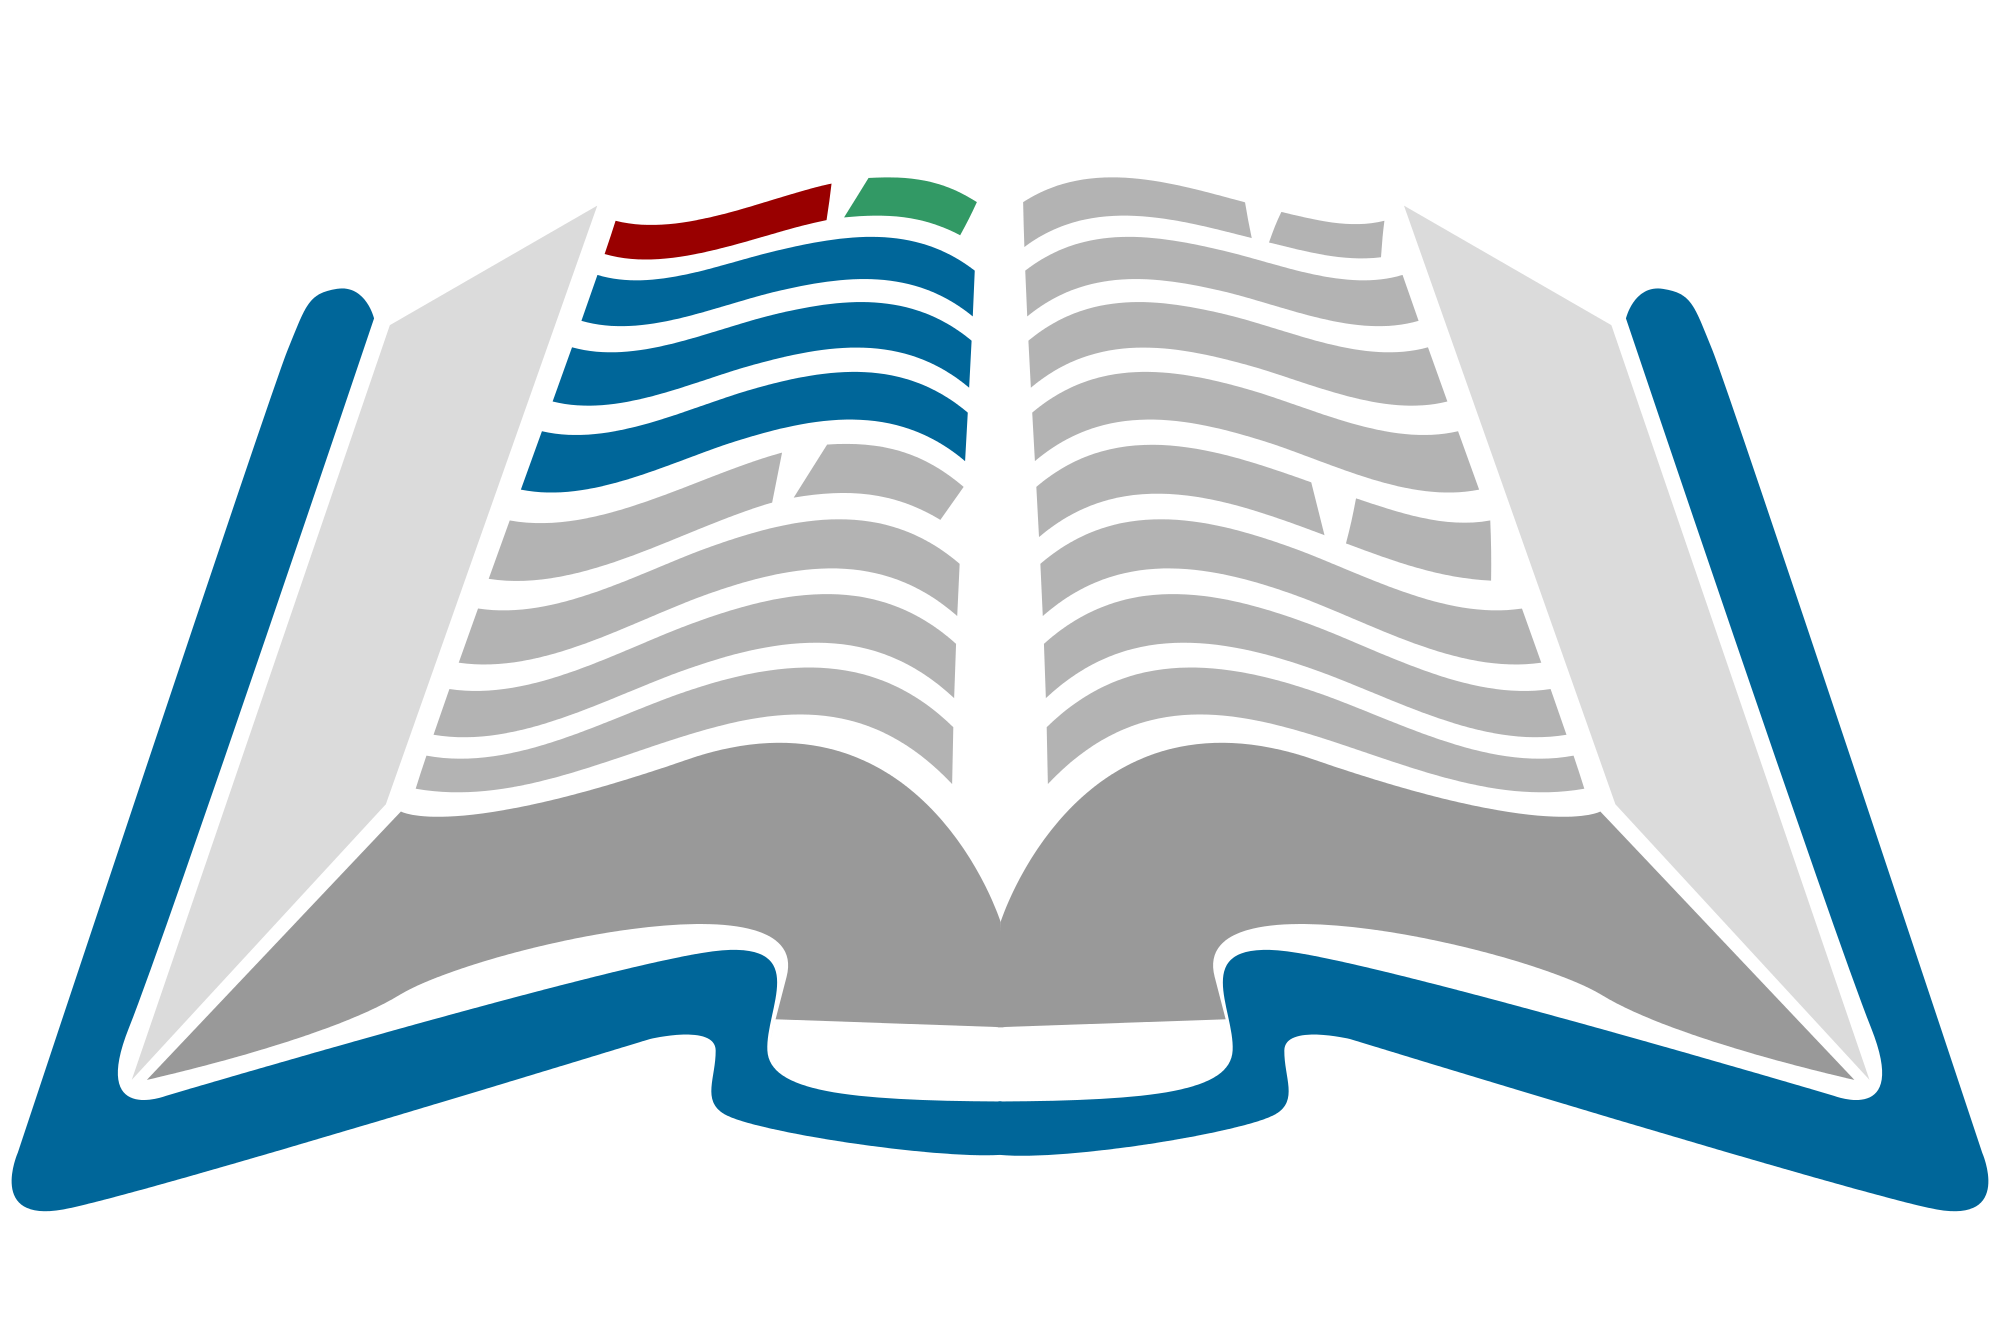 File wikt bookdictionary logo. Dictionary clipart book index